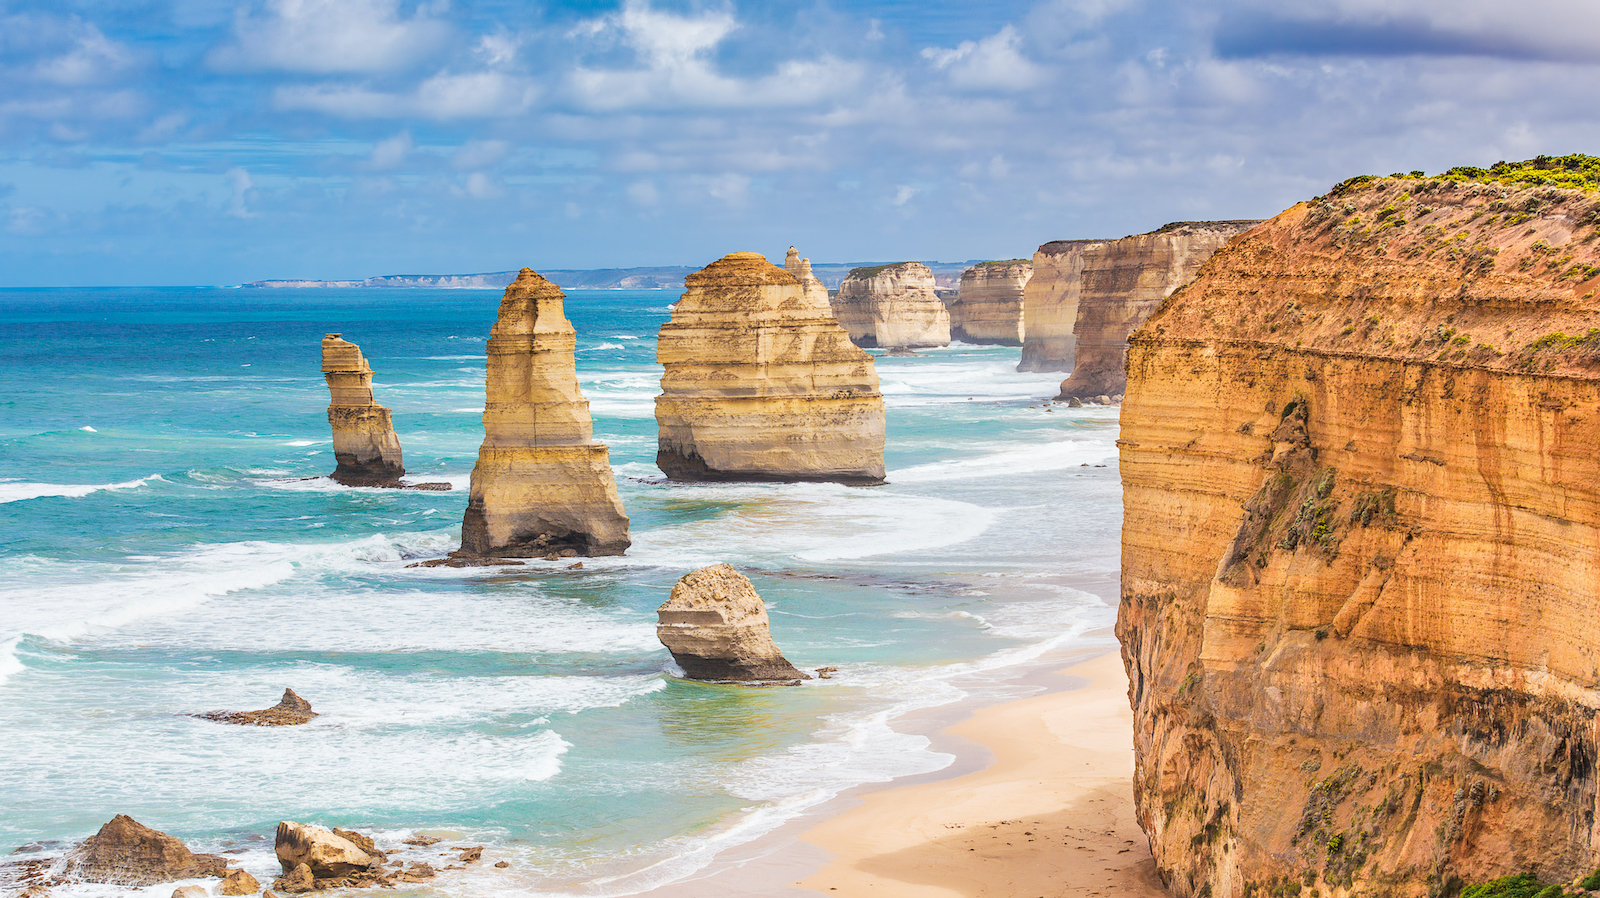 11GyPSy Guide Narrated Driving Tour App for Great Ocean Road